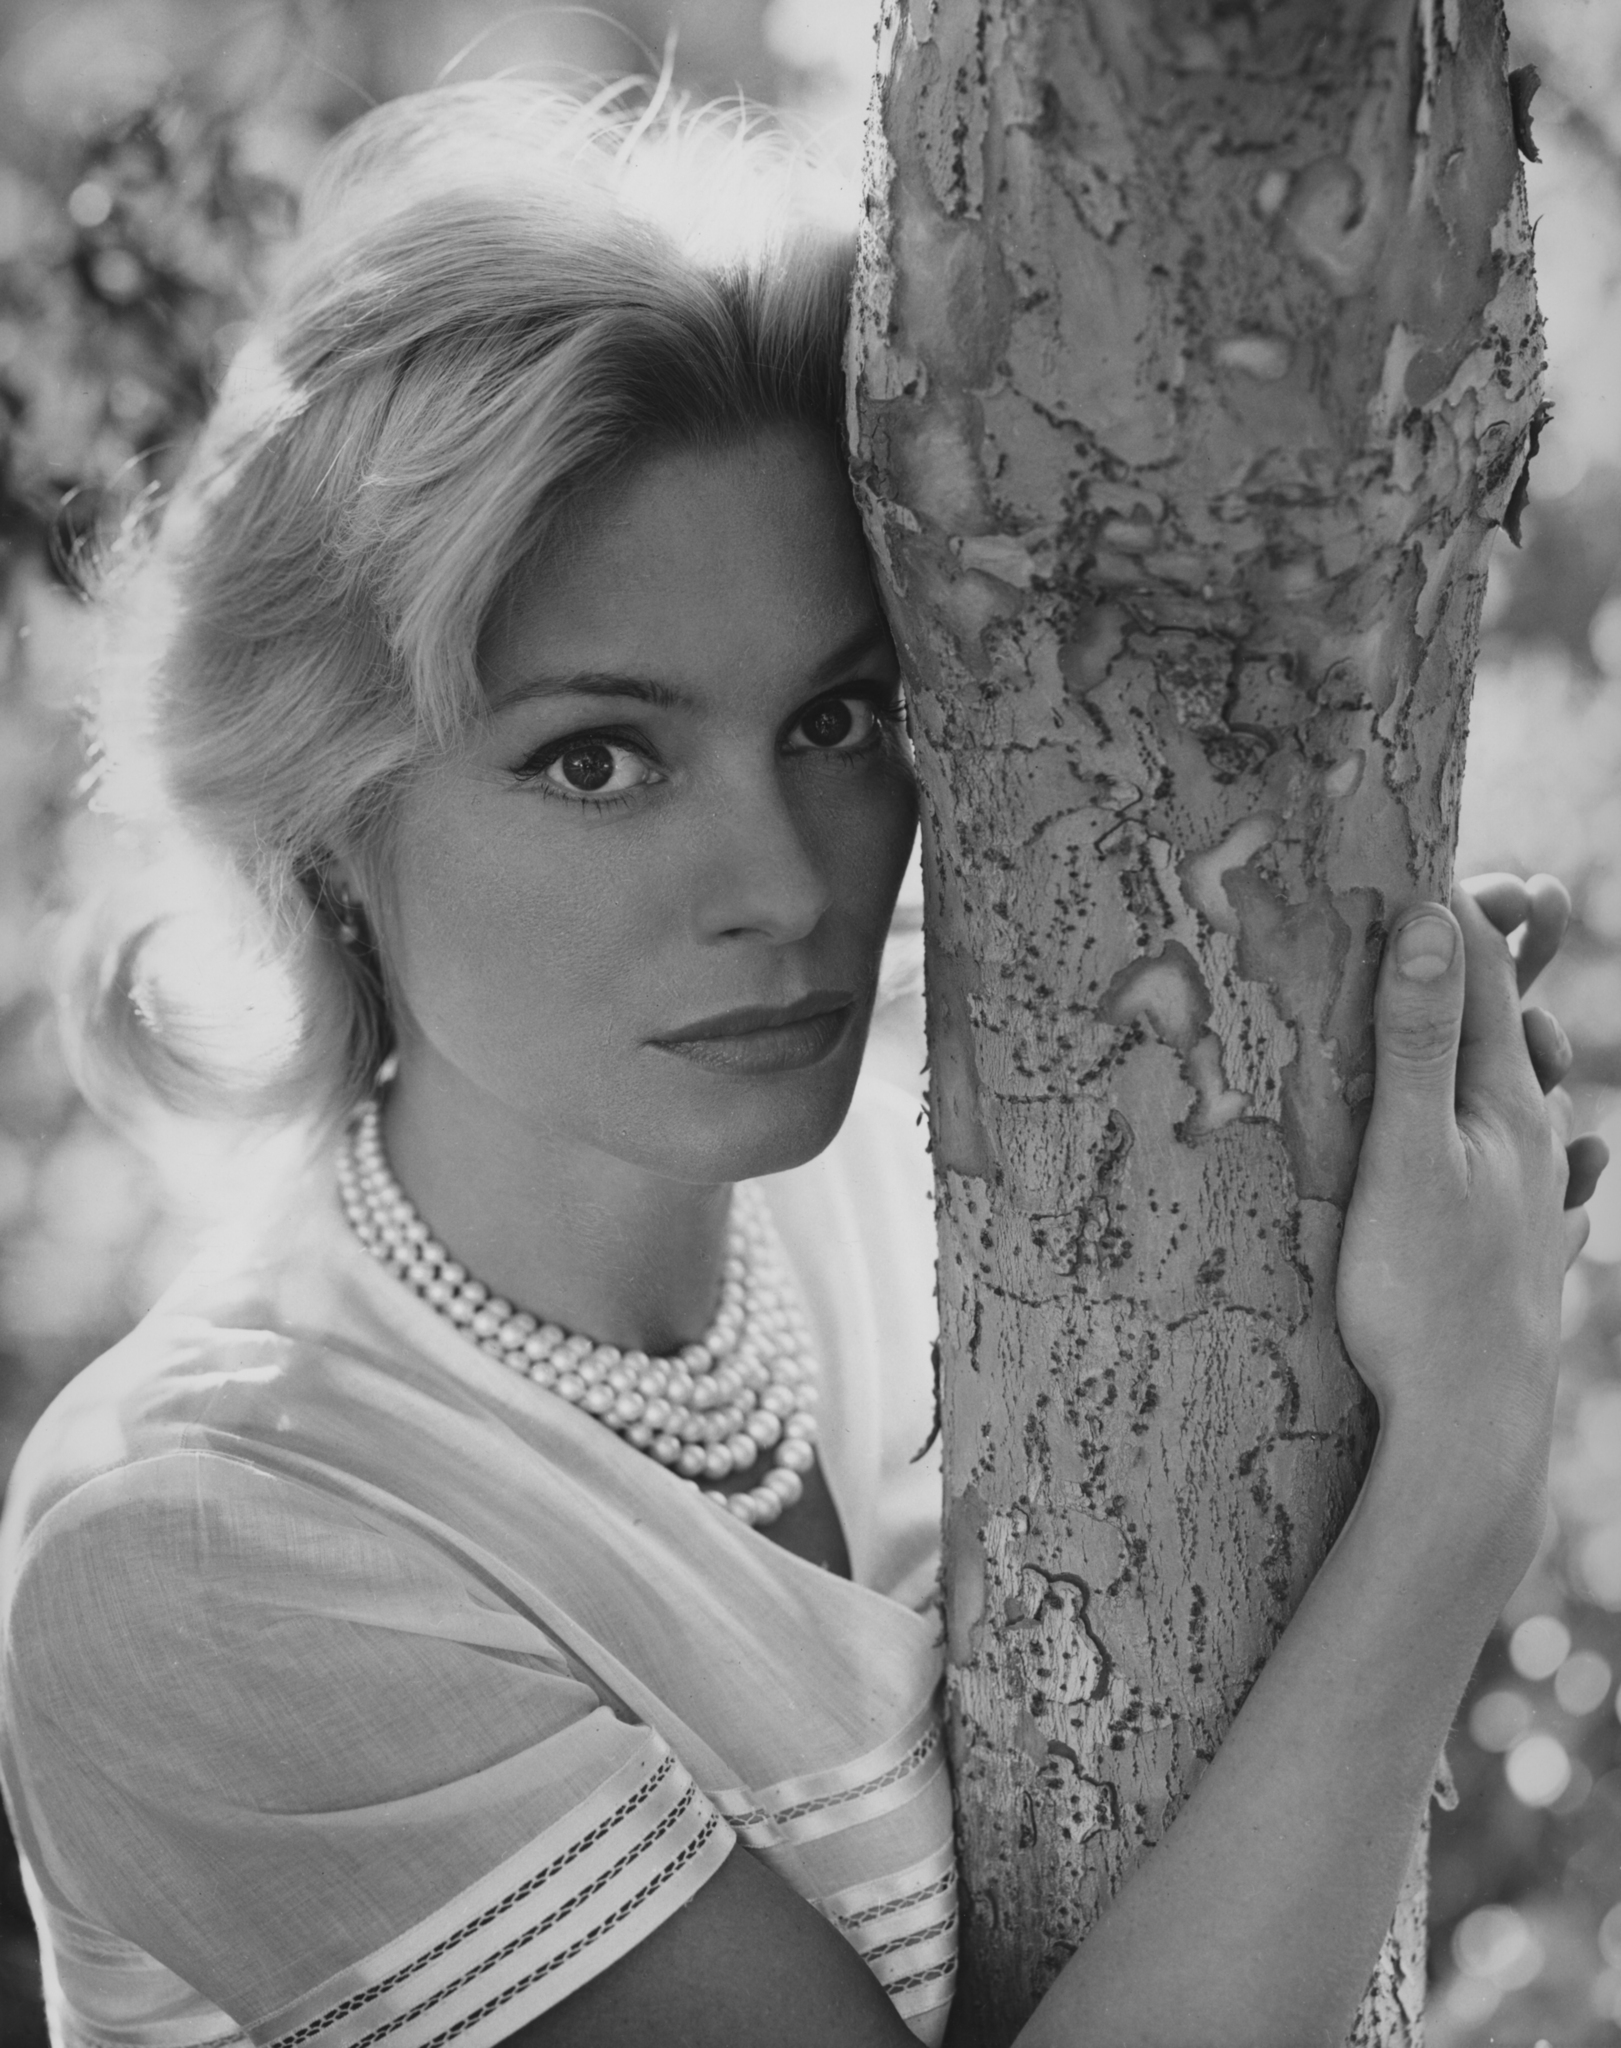 Ingrid Thulin cries and whispers